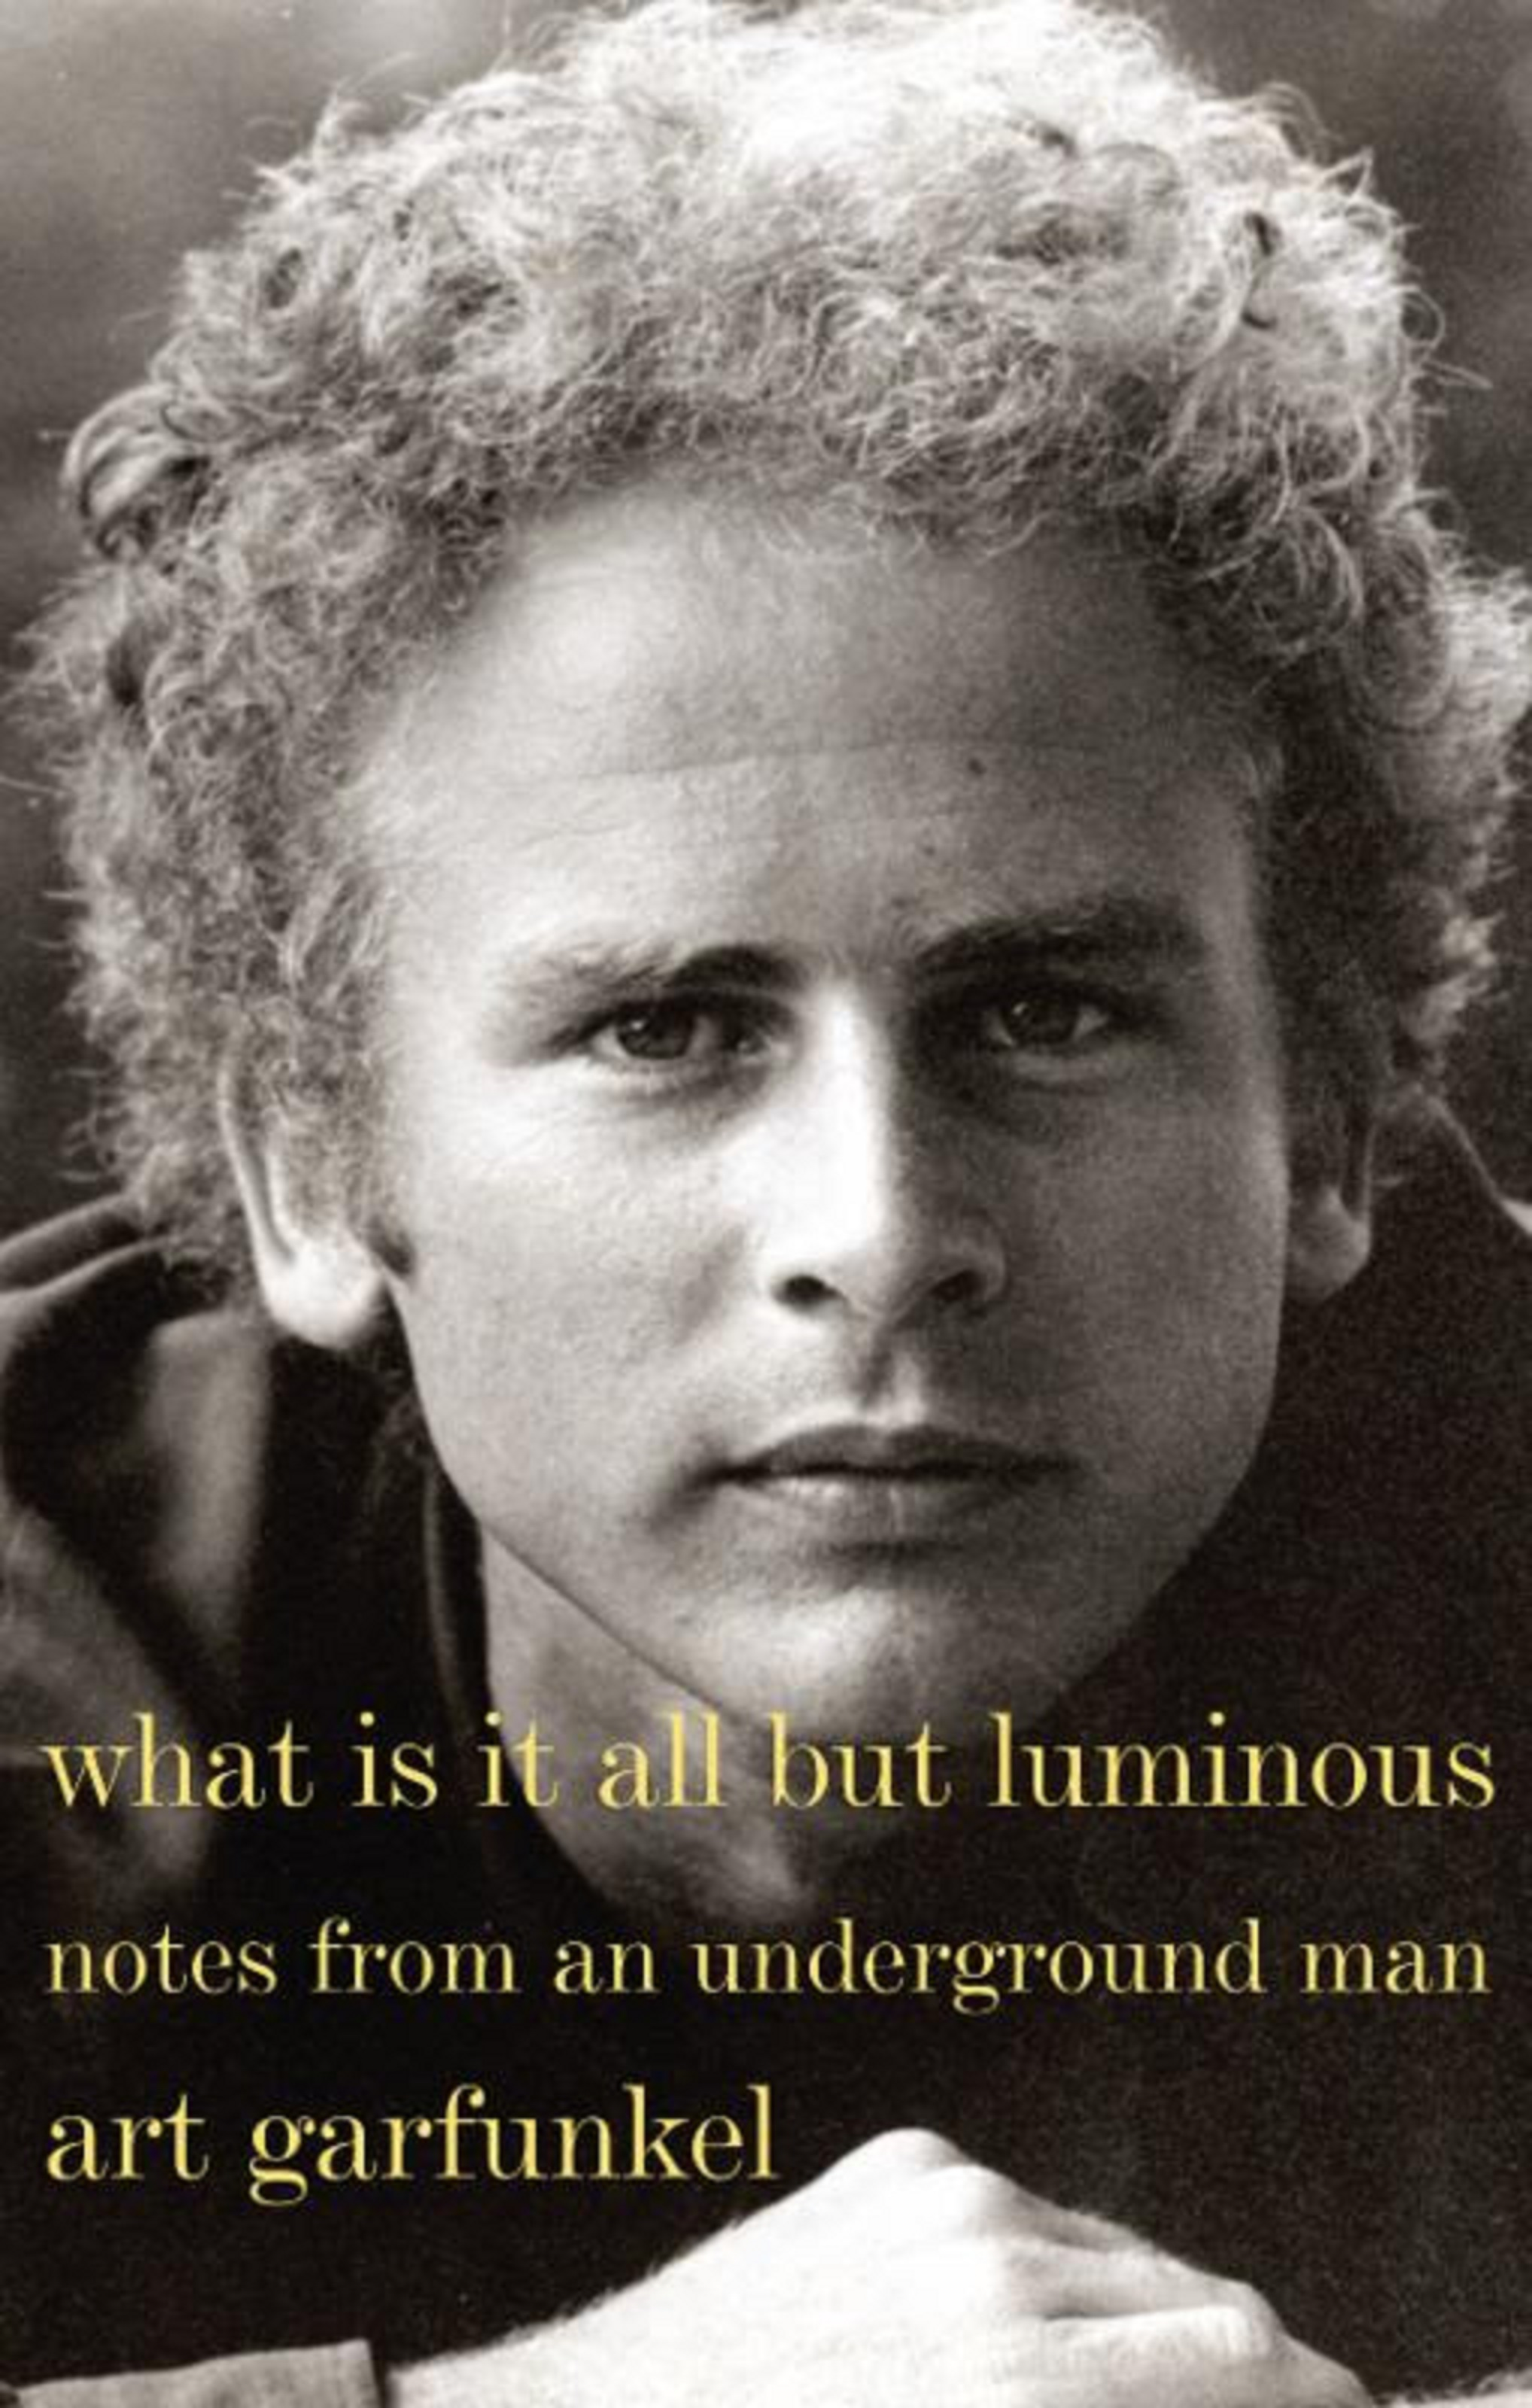 ART GARFUNKEL PLOTS U.S., U.K. AND GERMAN CONCERTS